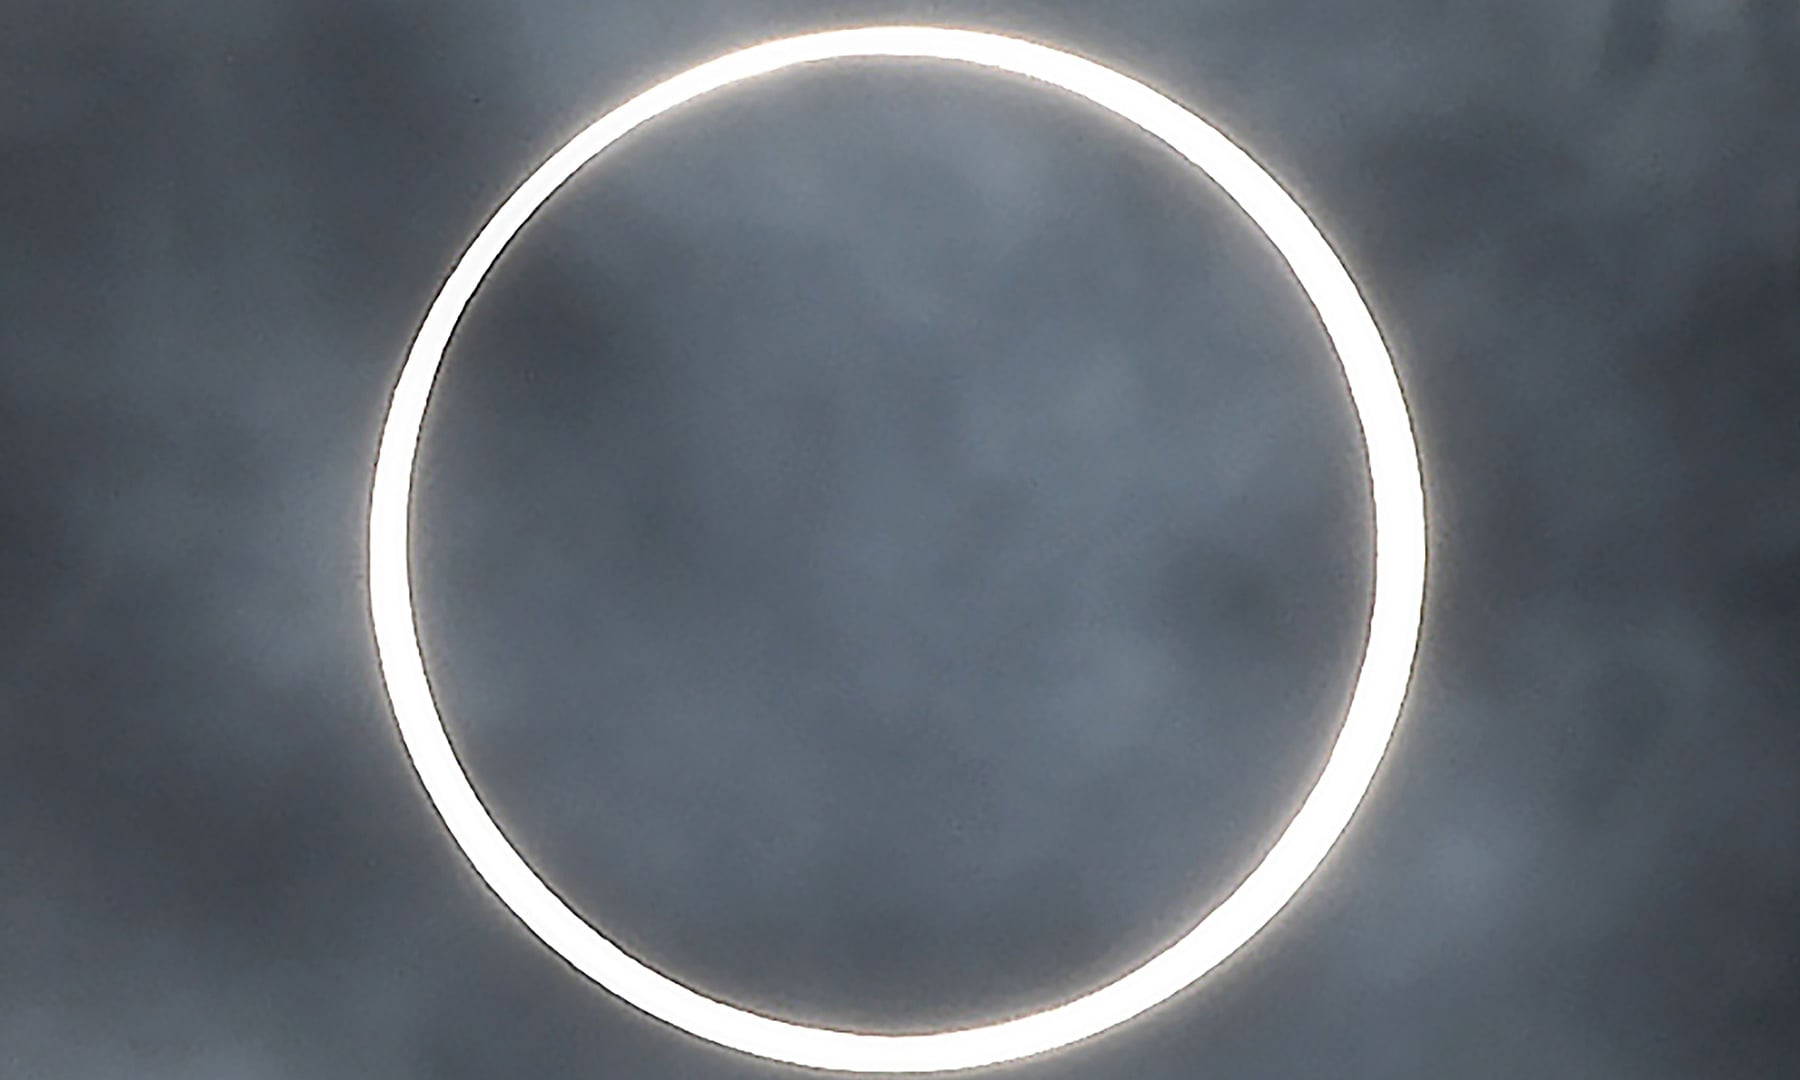 """The moon totally covers the sun in a rare """"ring of fire"""" solar eclipse as seen from the south Indian city of Dindigul in Tamil Nadu state on December 26. — AFP"""